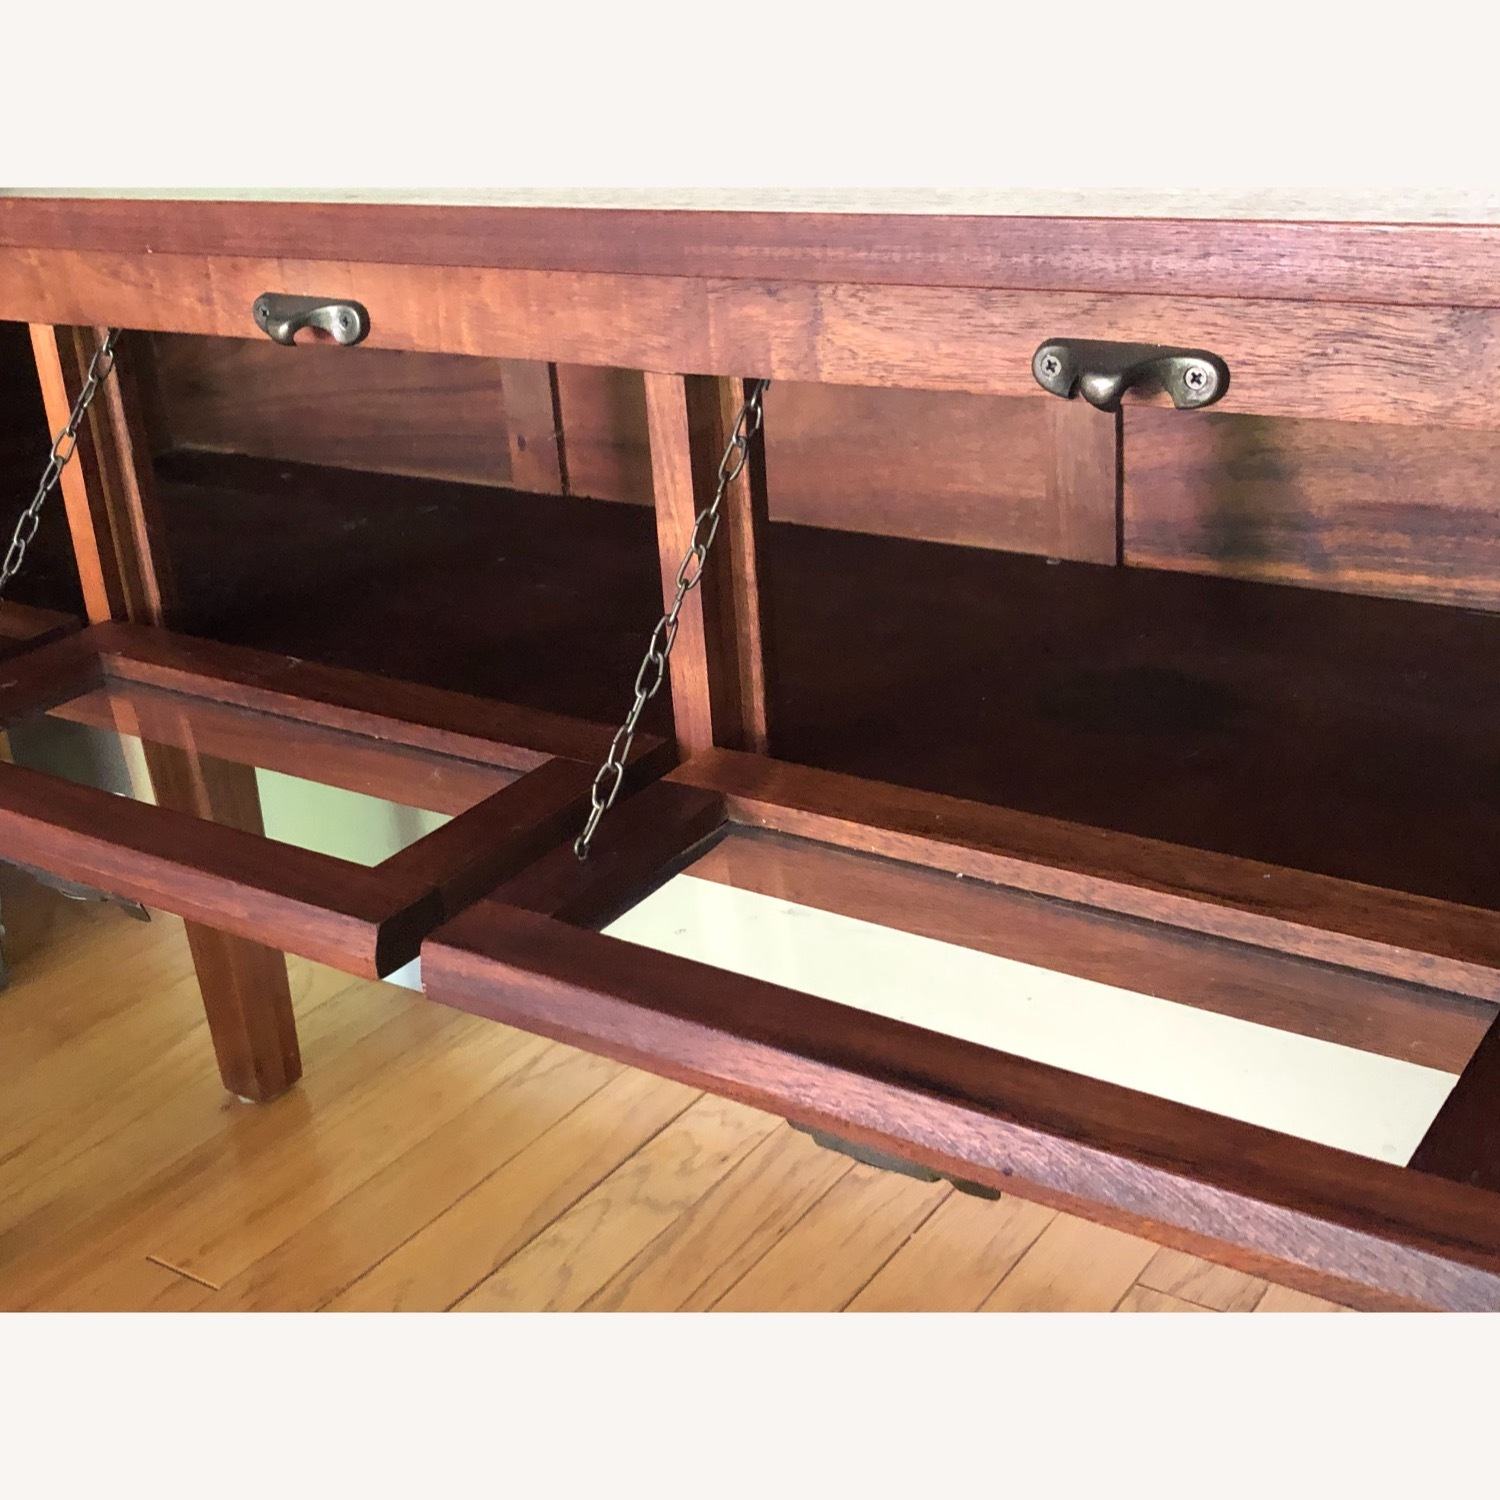 Pottery Barn Buffet / Sideboard with Glass Front Doors - image-3